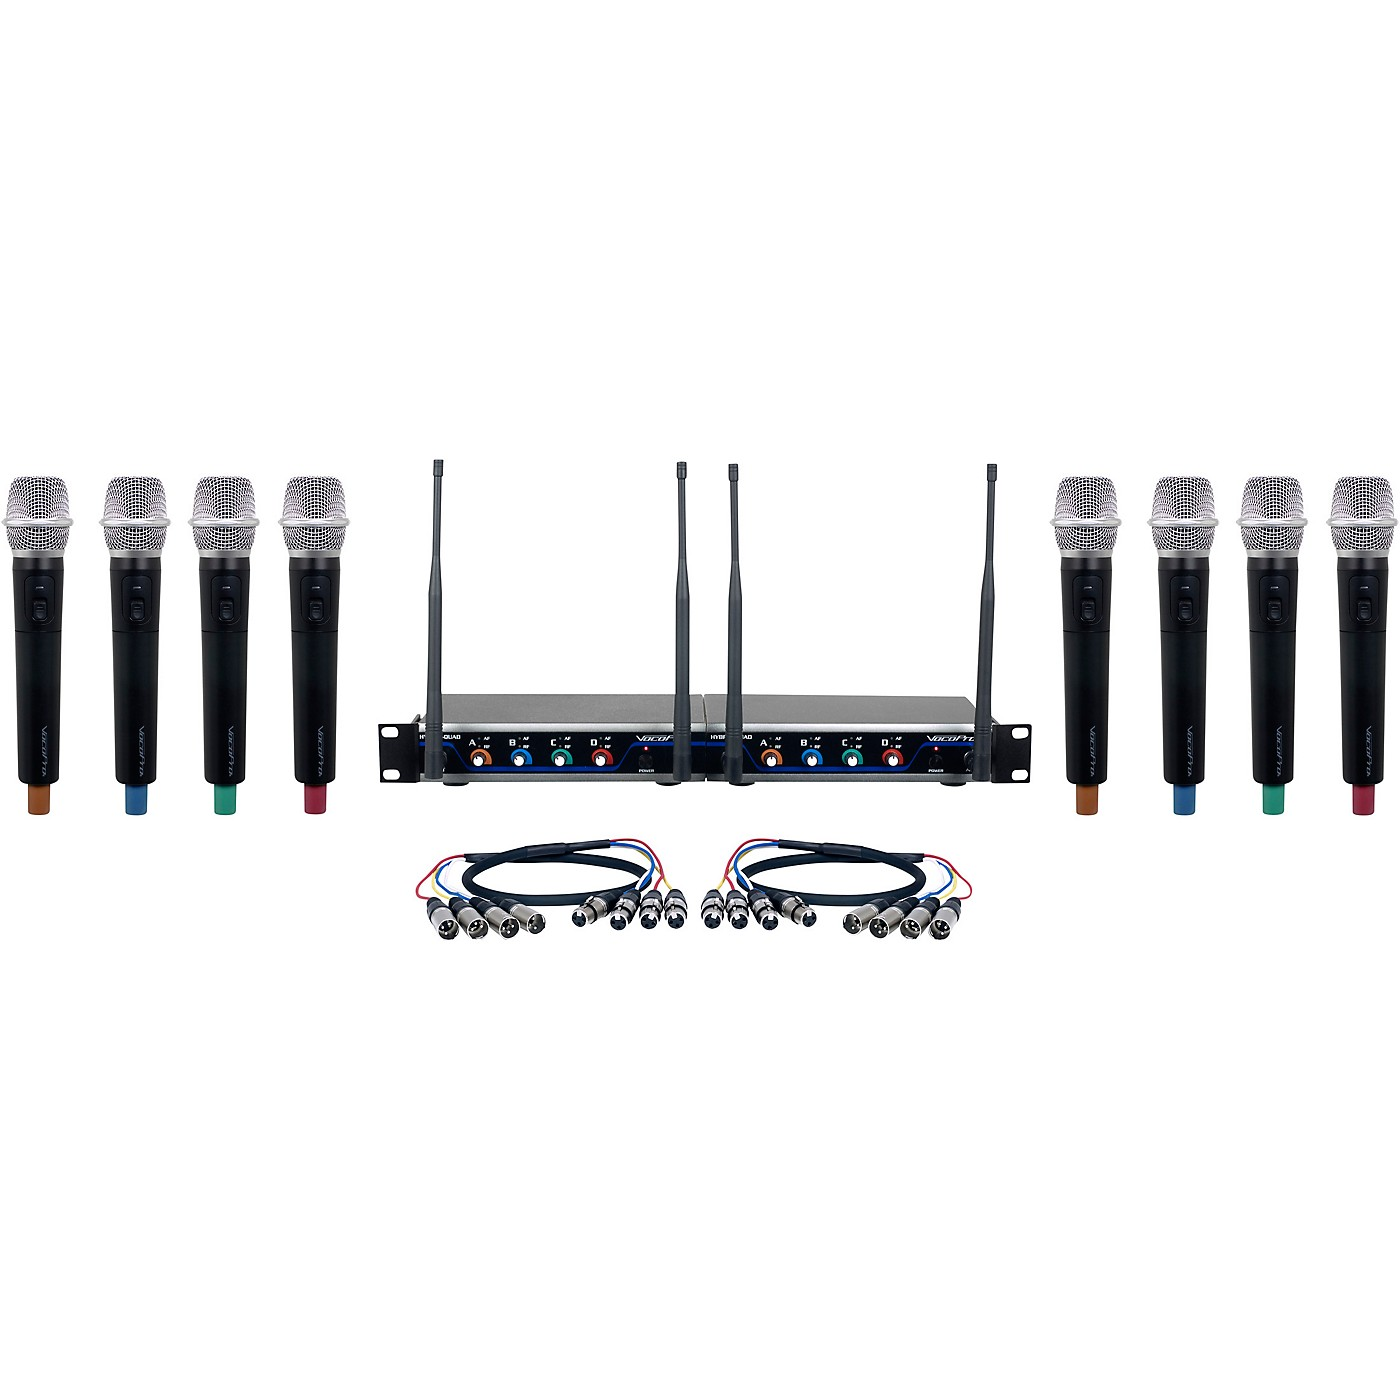 Vocopro Digital-Acapella-8 8-Channel UHF Wireless Handheld Microphone System thumbnail